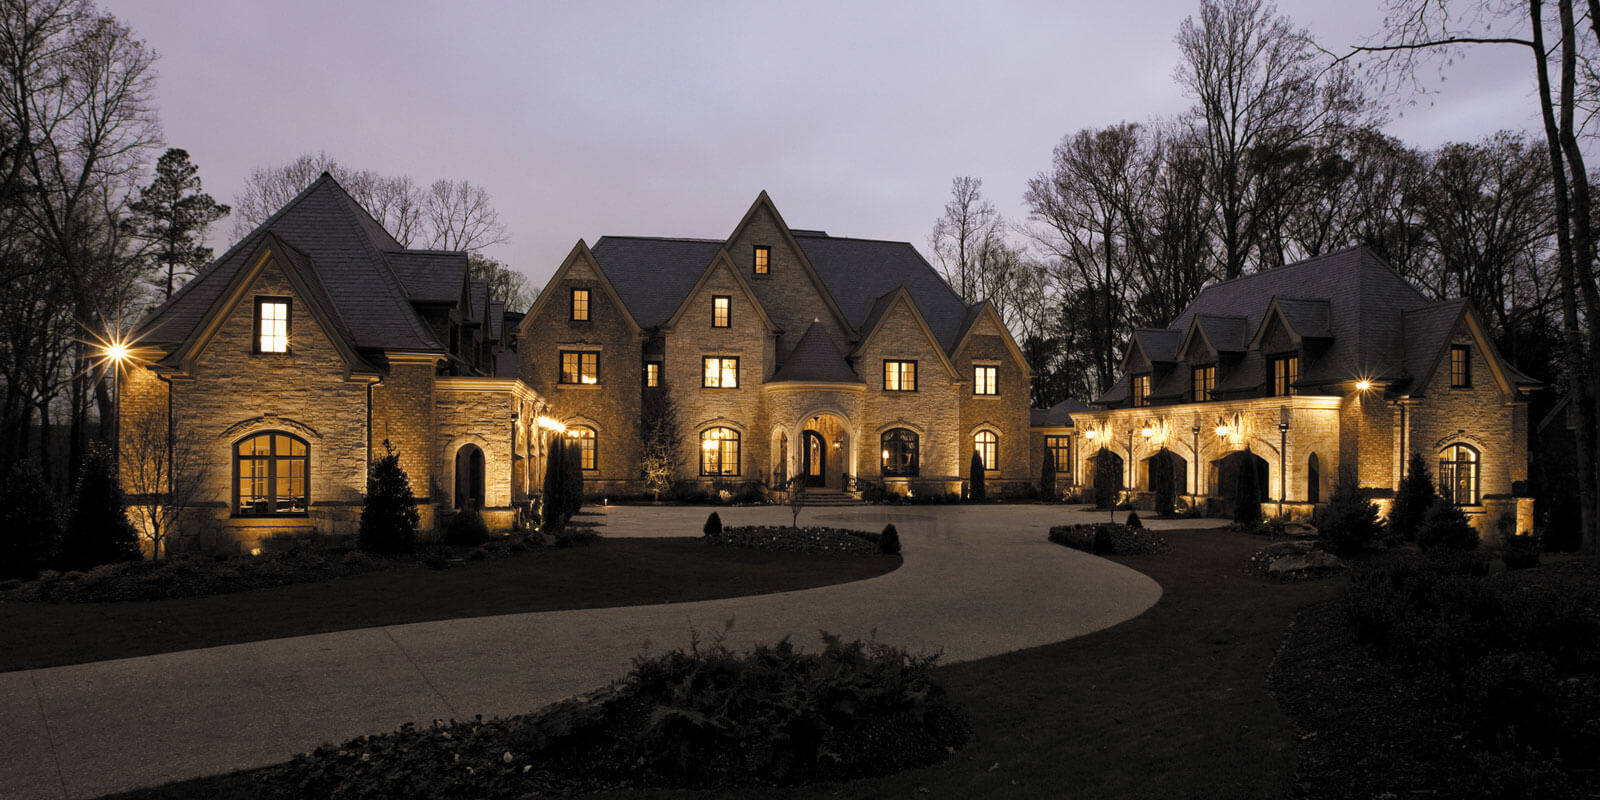 luxury house with dim light outside